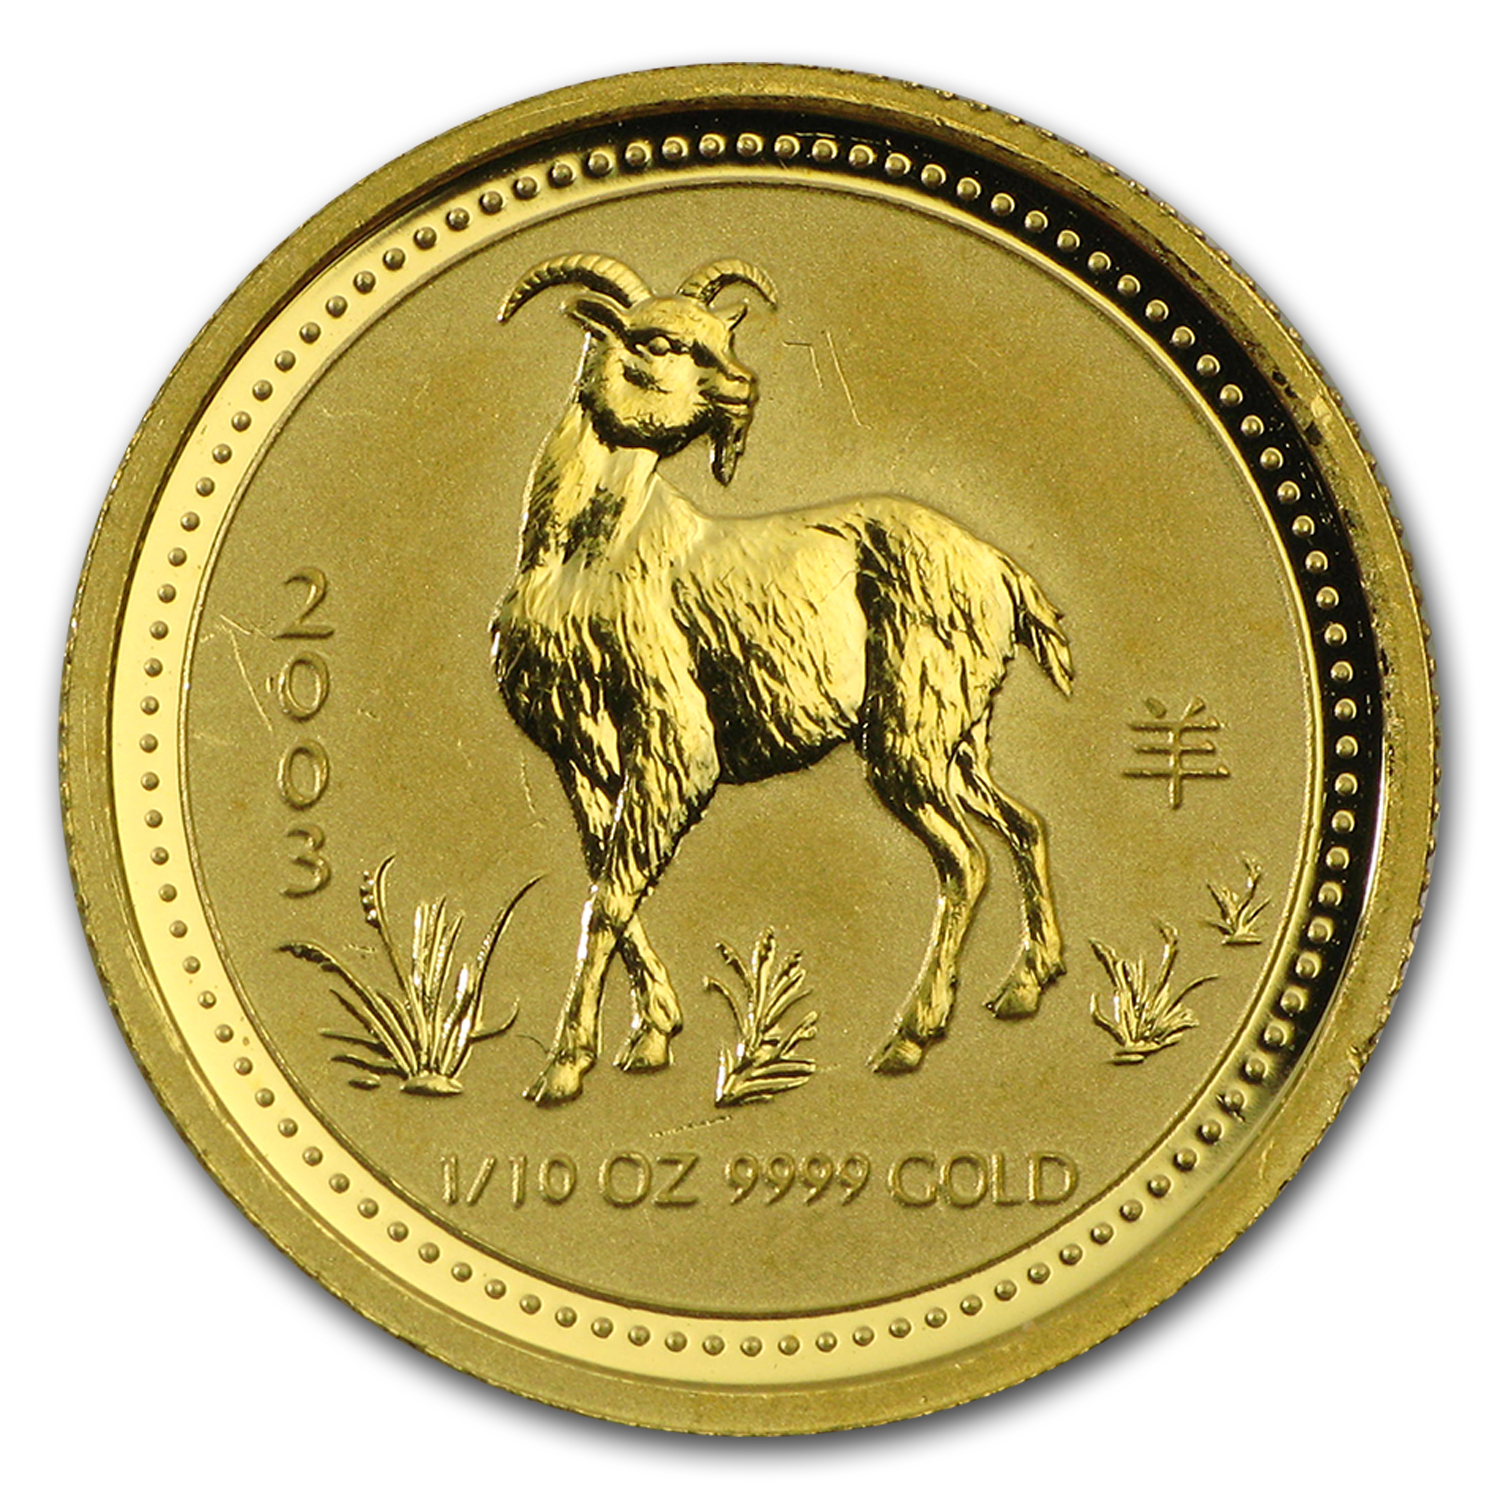 2003 1/10 oz Gold Lunar Year of the Goat BU (Abrasions)